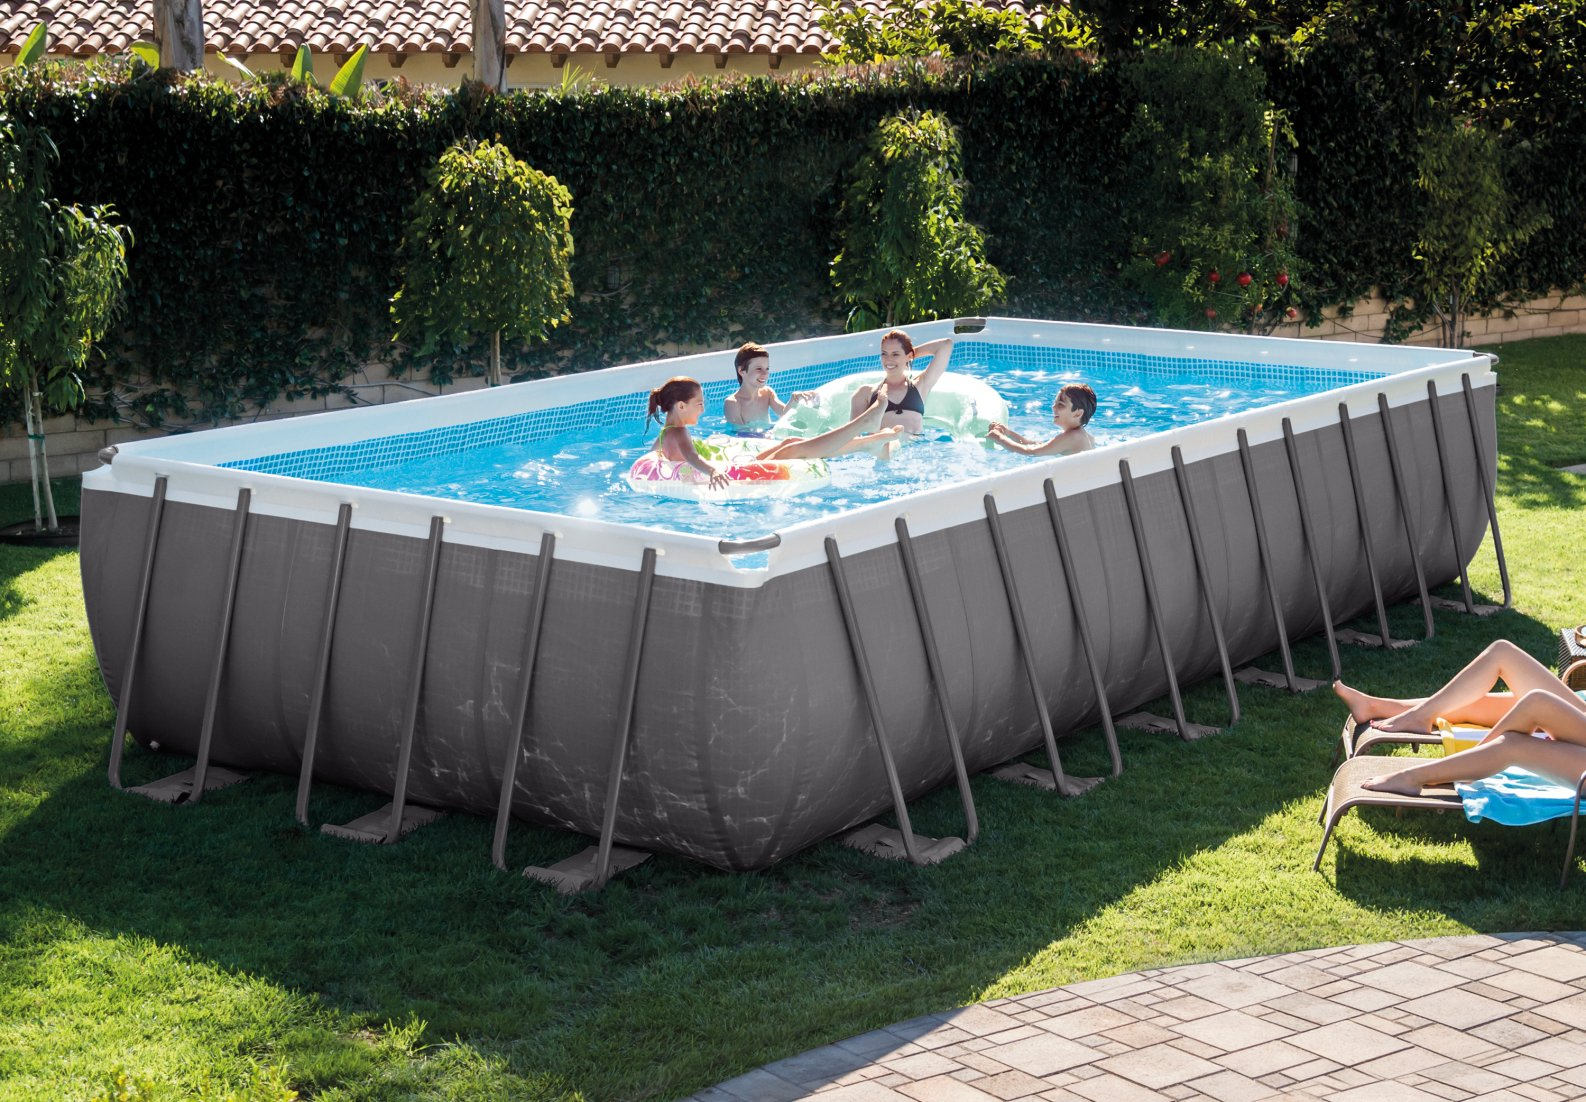 Intex 28362 piscina fuori terra 7 metri for Piscina estructural intex